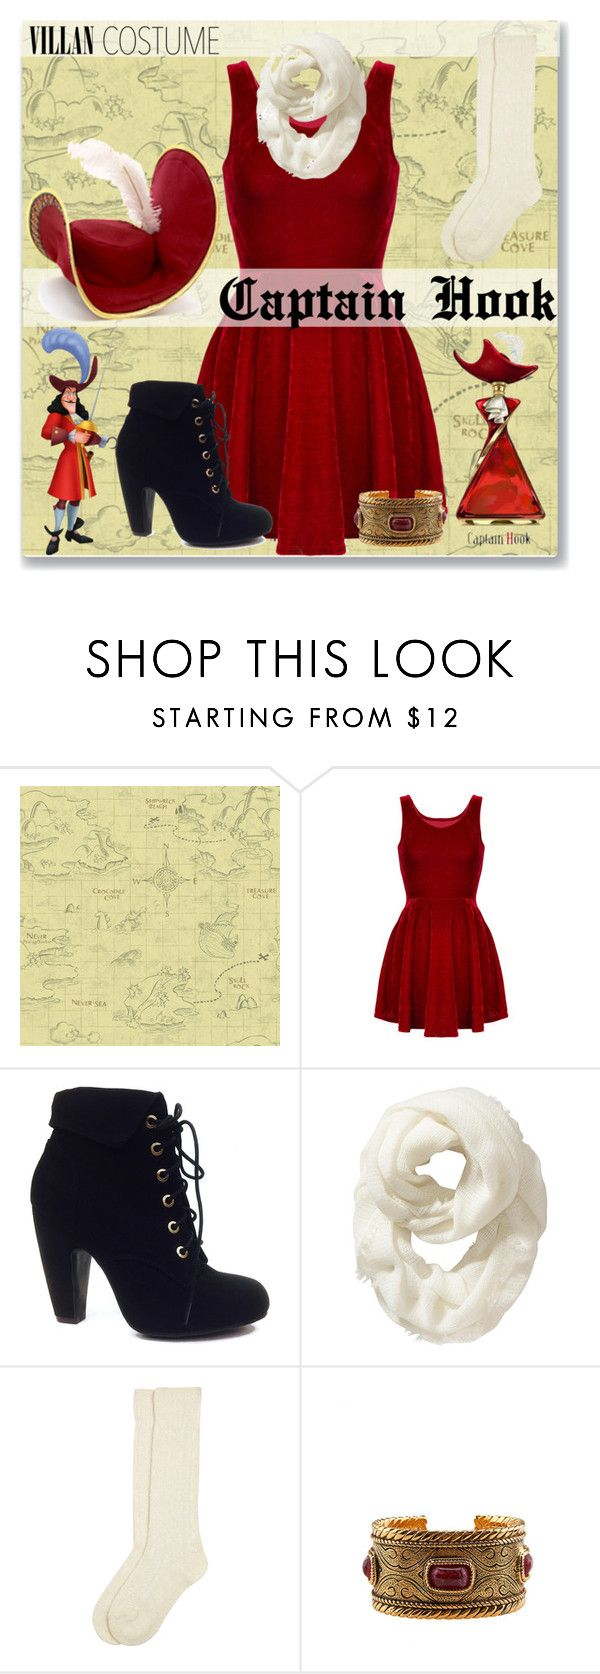 """Simple Captain Hook"" by astriddt ❤ liked on Polyvore featuring York Wallcoverings, Bamboo, Old Navy, Monsoon, Chanel, Halloween, 60secondstyle and villaincostume"